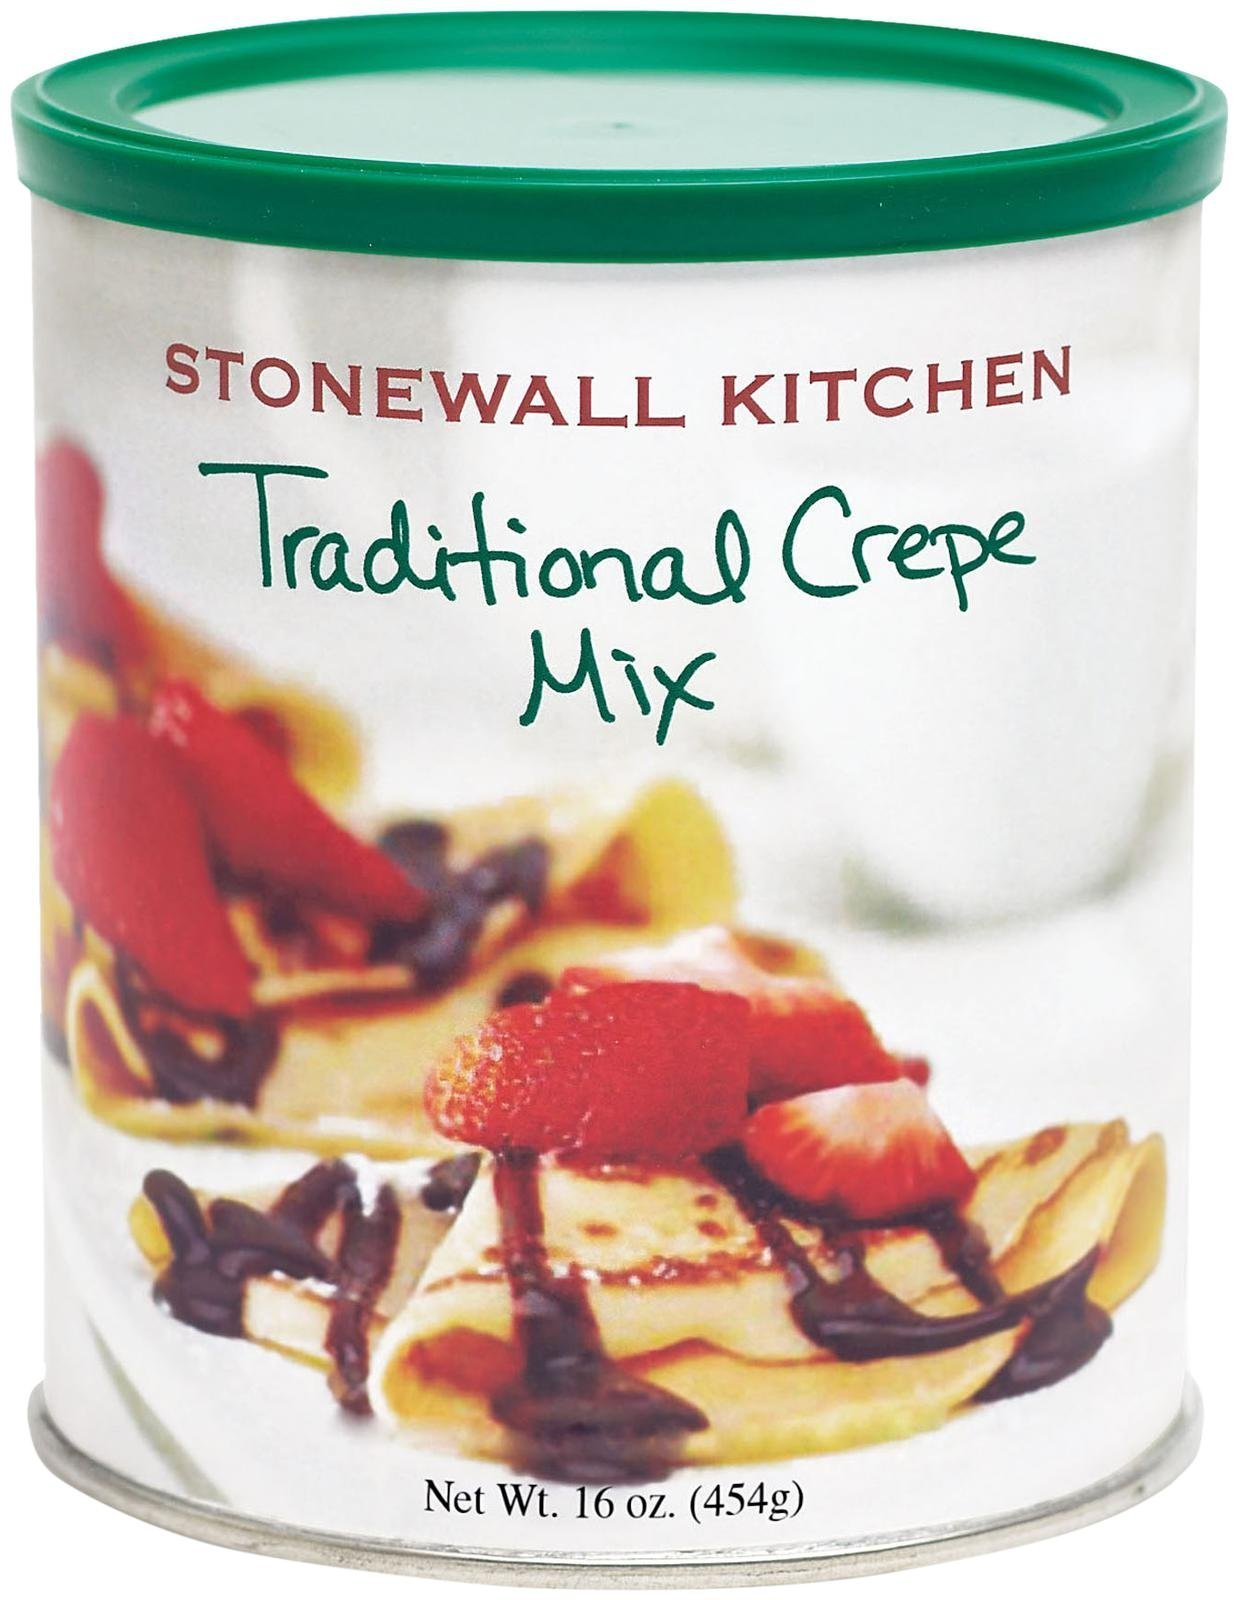 Stonewall Kitchen Crepe Recipe